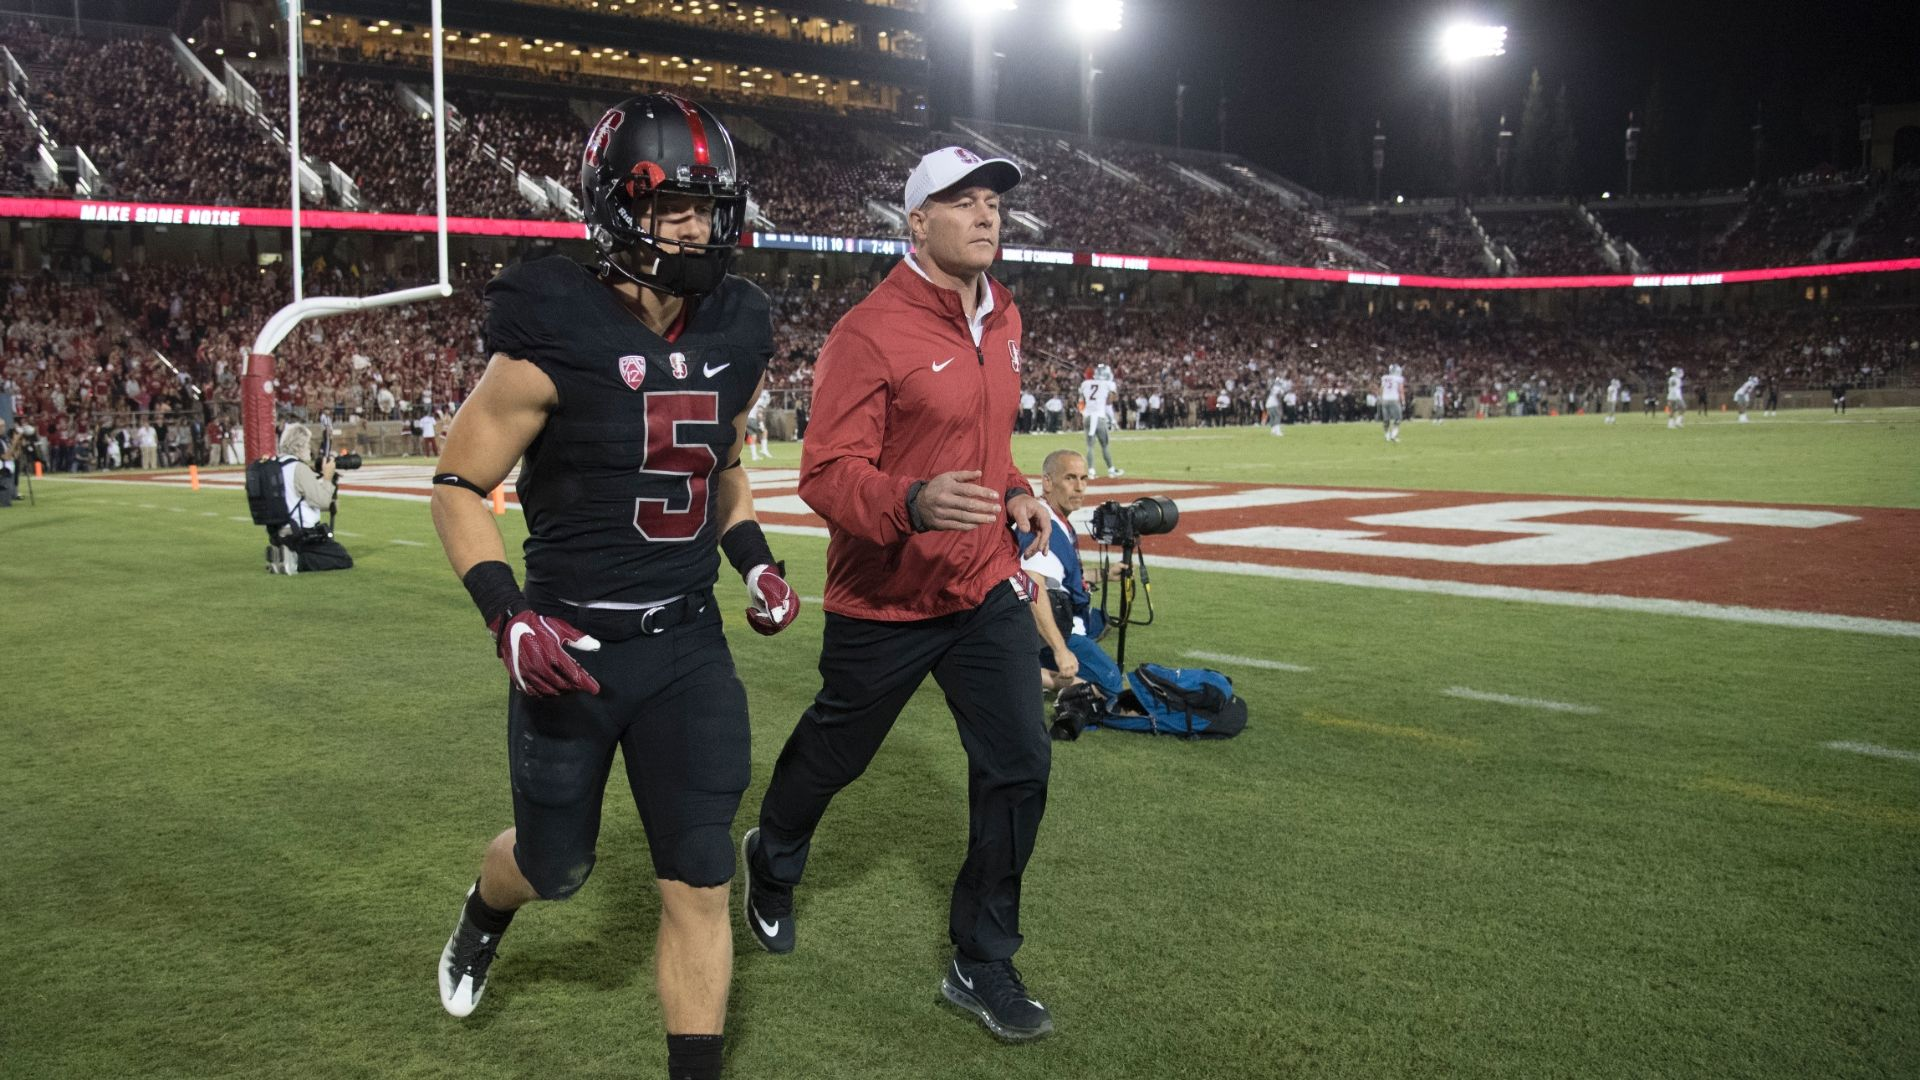 McCaffrey had just 35 yards rushing after getting hurt in the first half versus Wazzu....